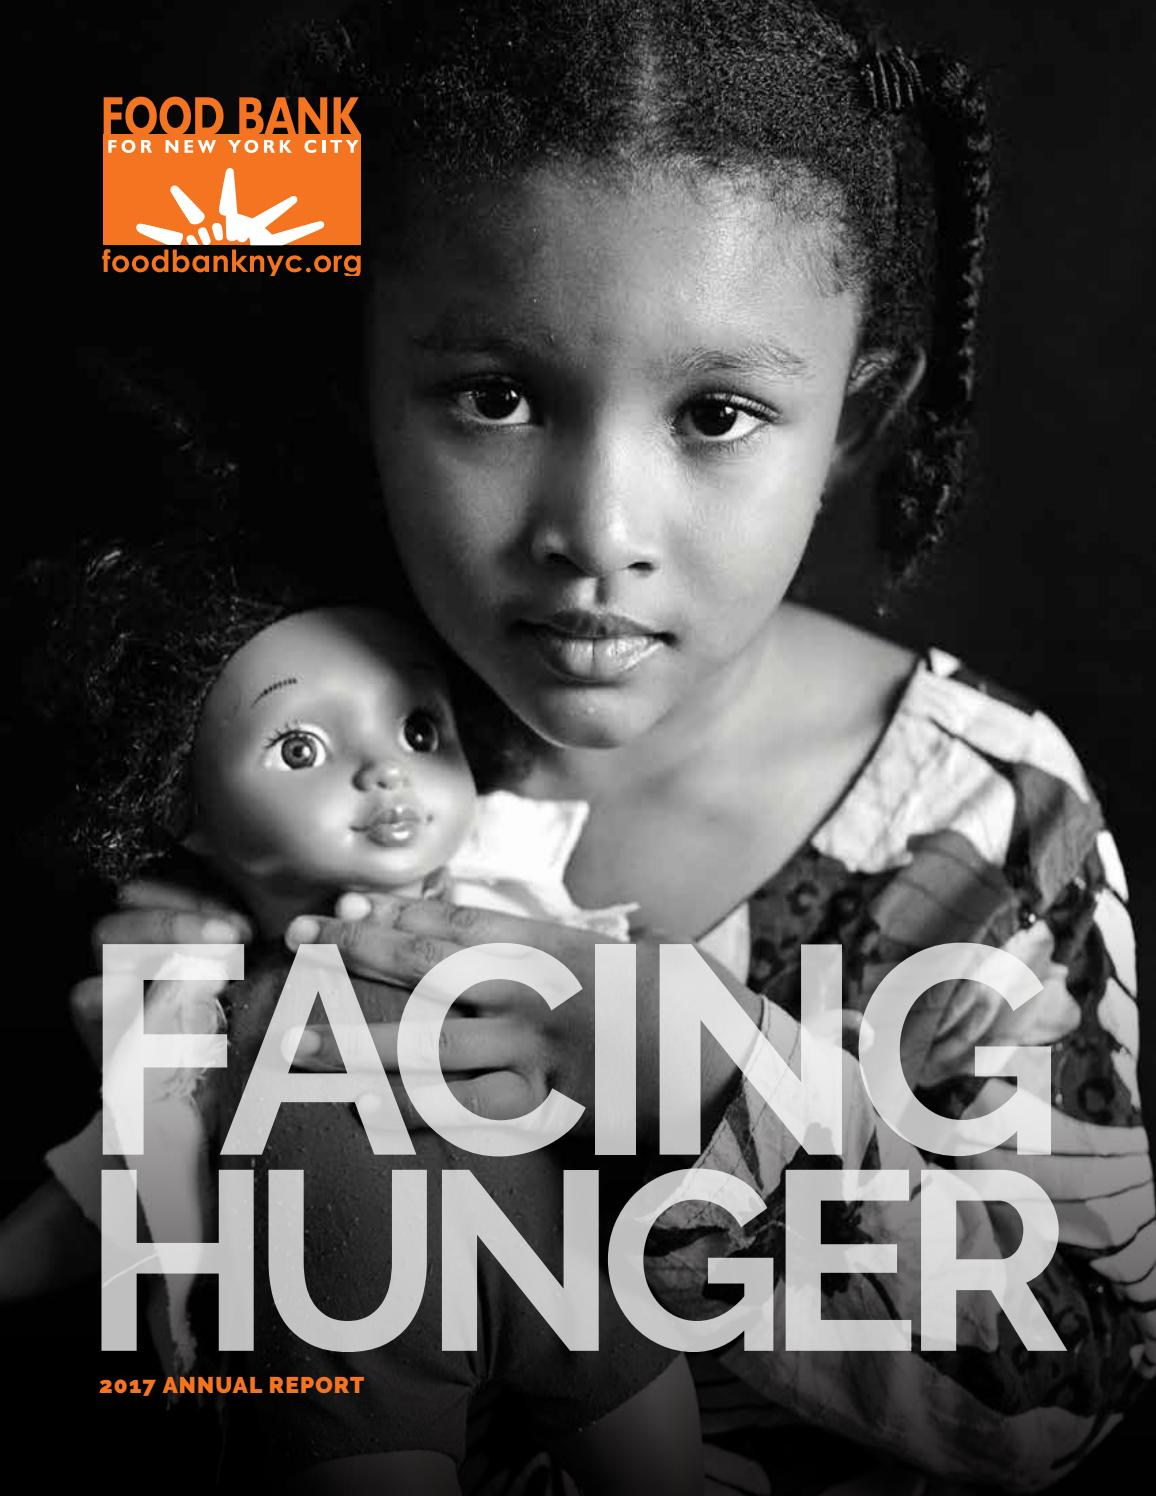 Food Bank For New York City Fiscal Year 2017 Annual Report